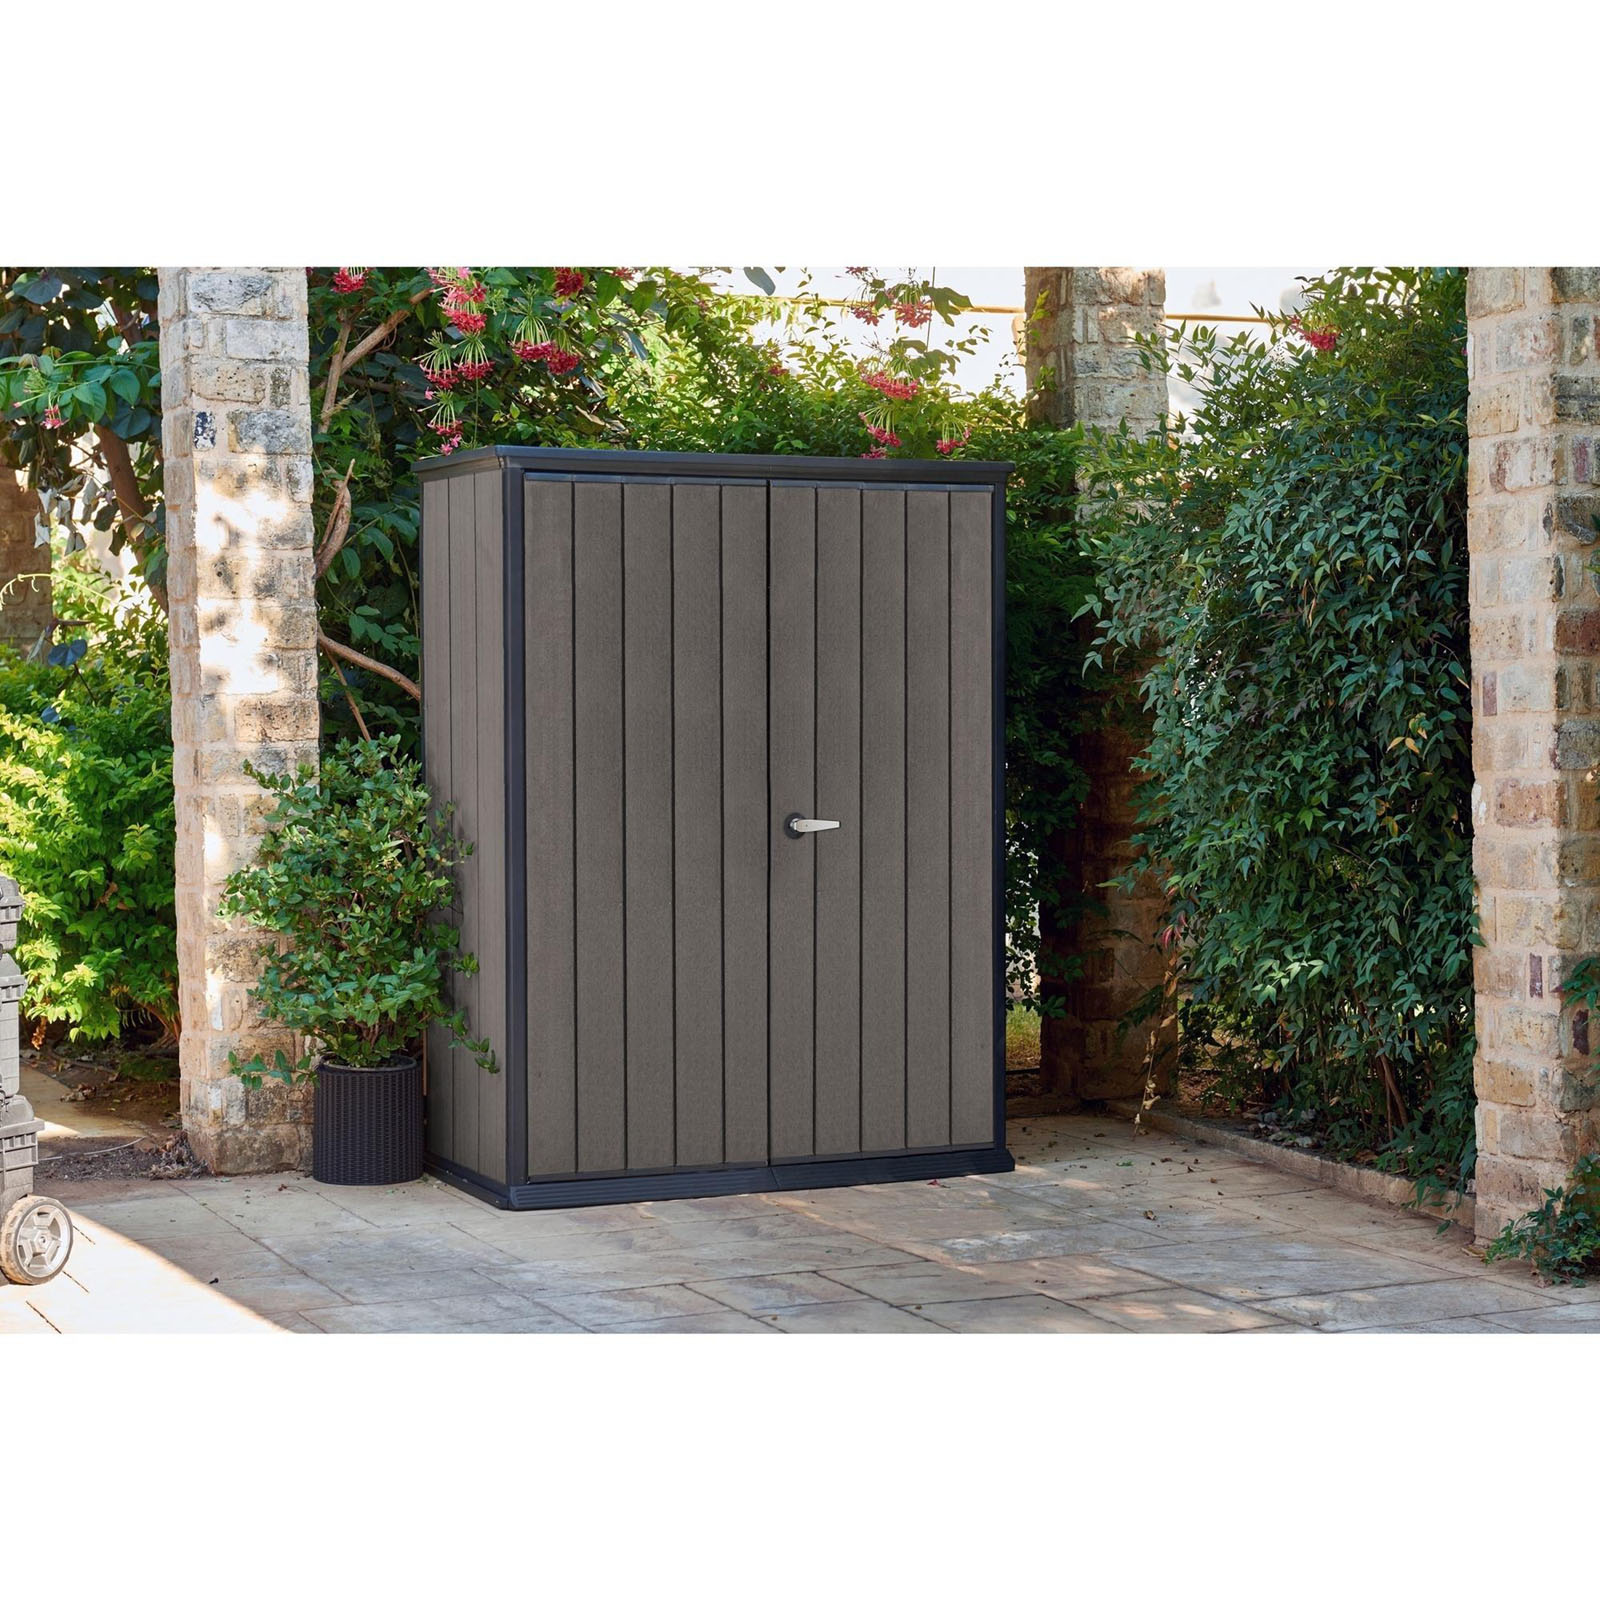 Keter High Store Keter High Store Outdoor Storage Shed Sears Marketplace